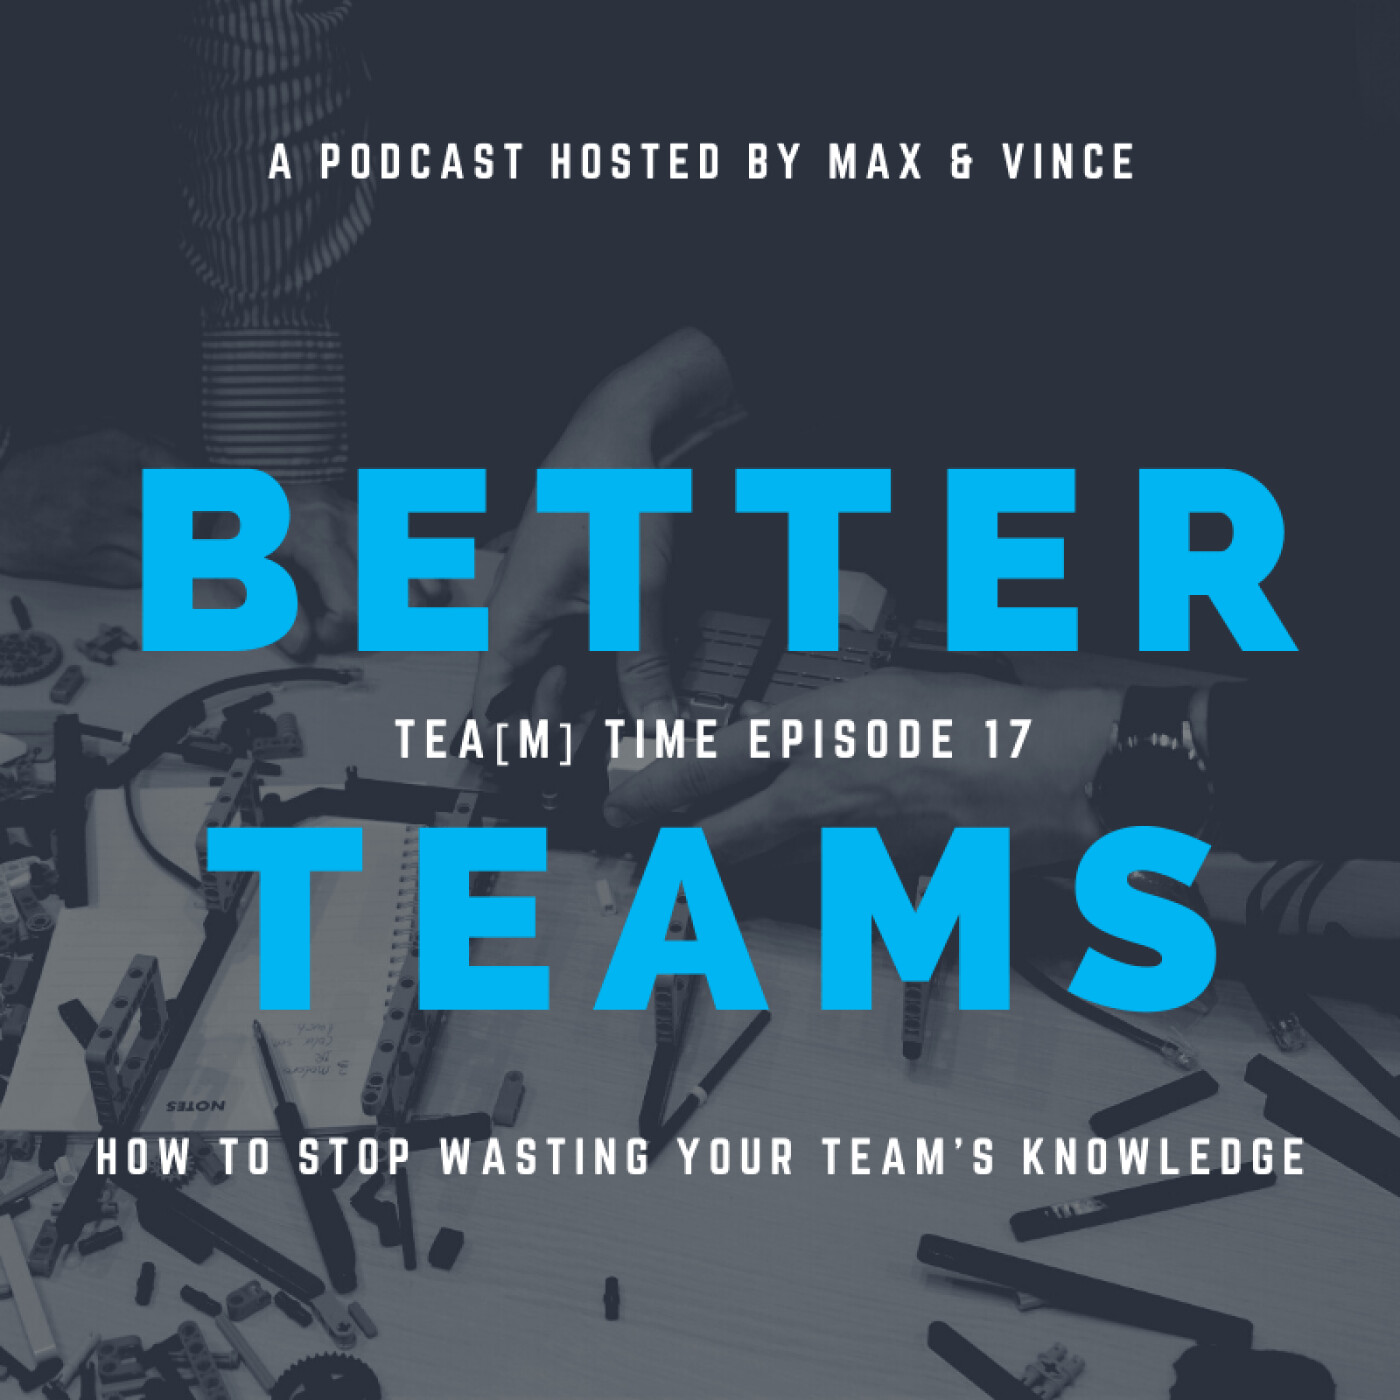 TEA(M) TIME - Episode 17 - How to Stop Wasting Your Team's Knowledge